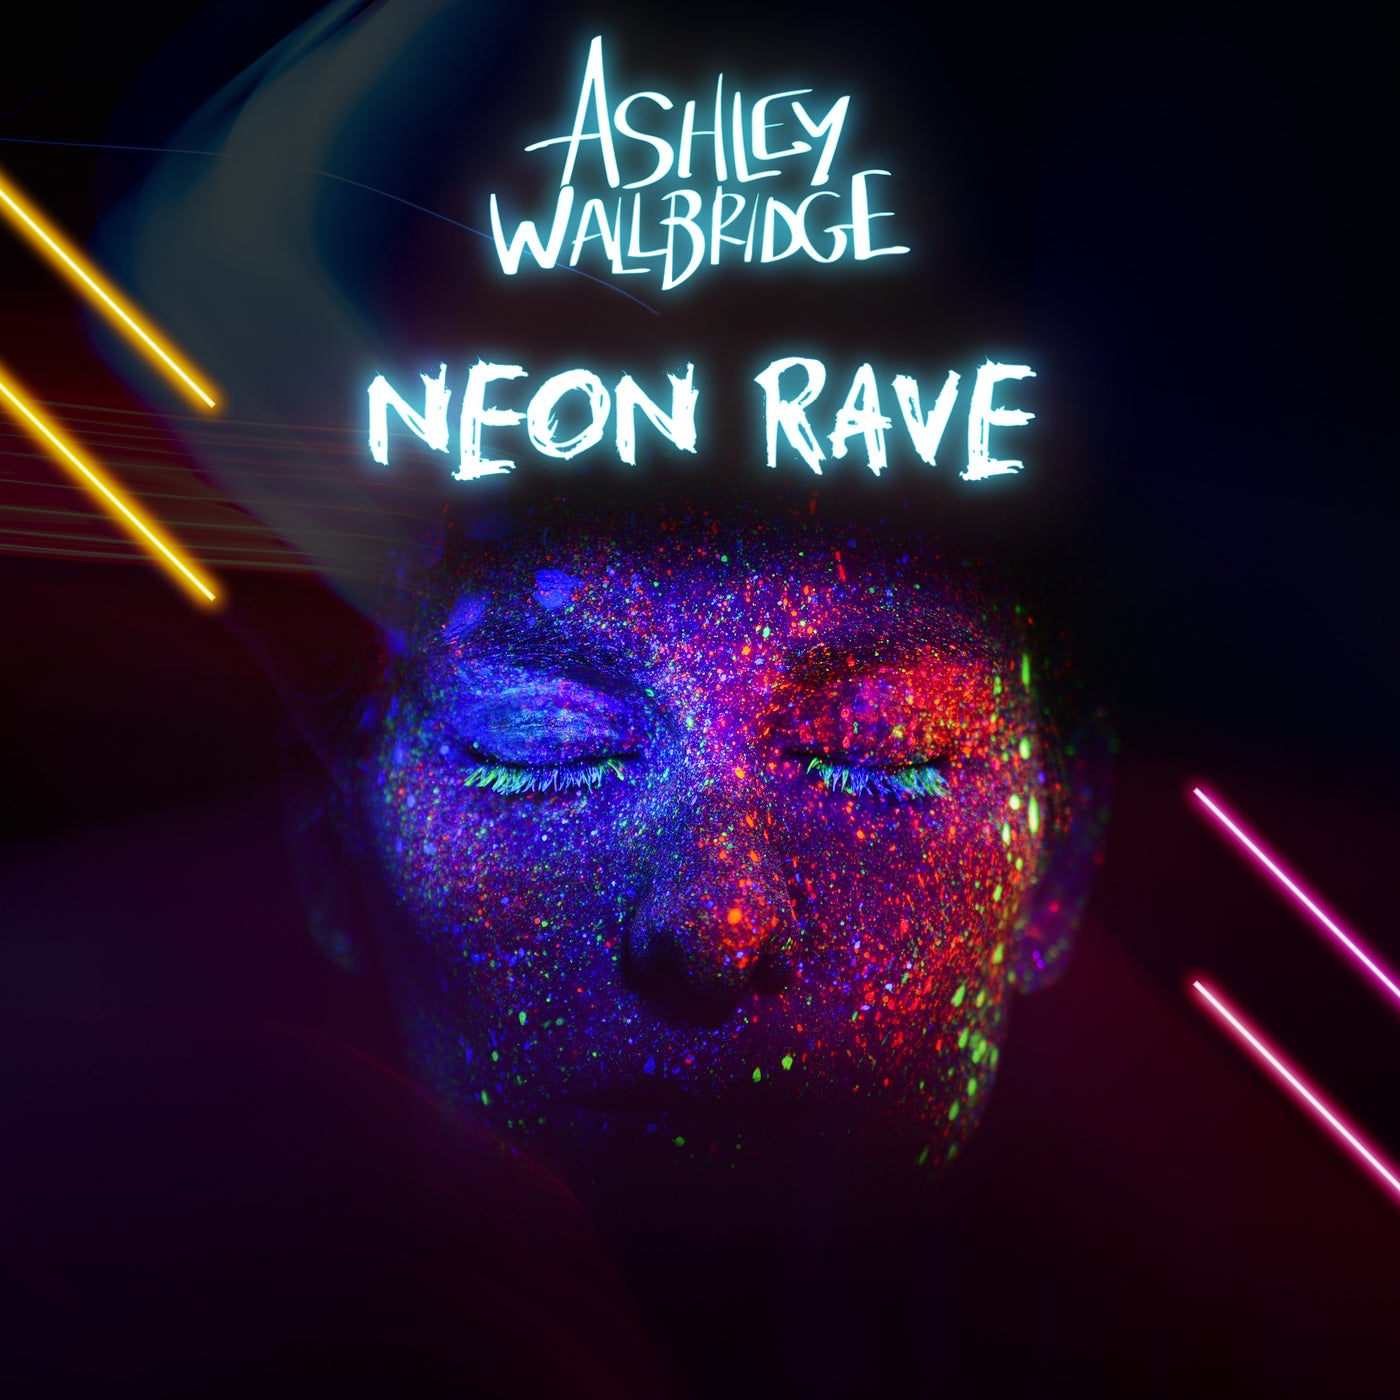 Neon Rave (Extended Mix)